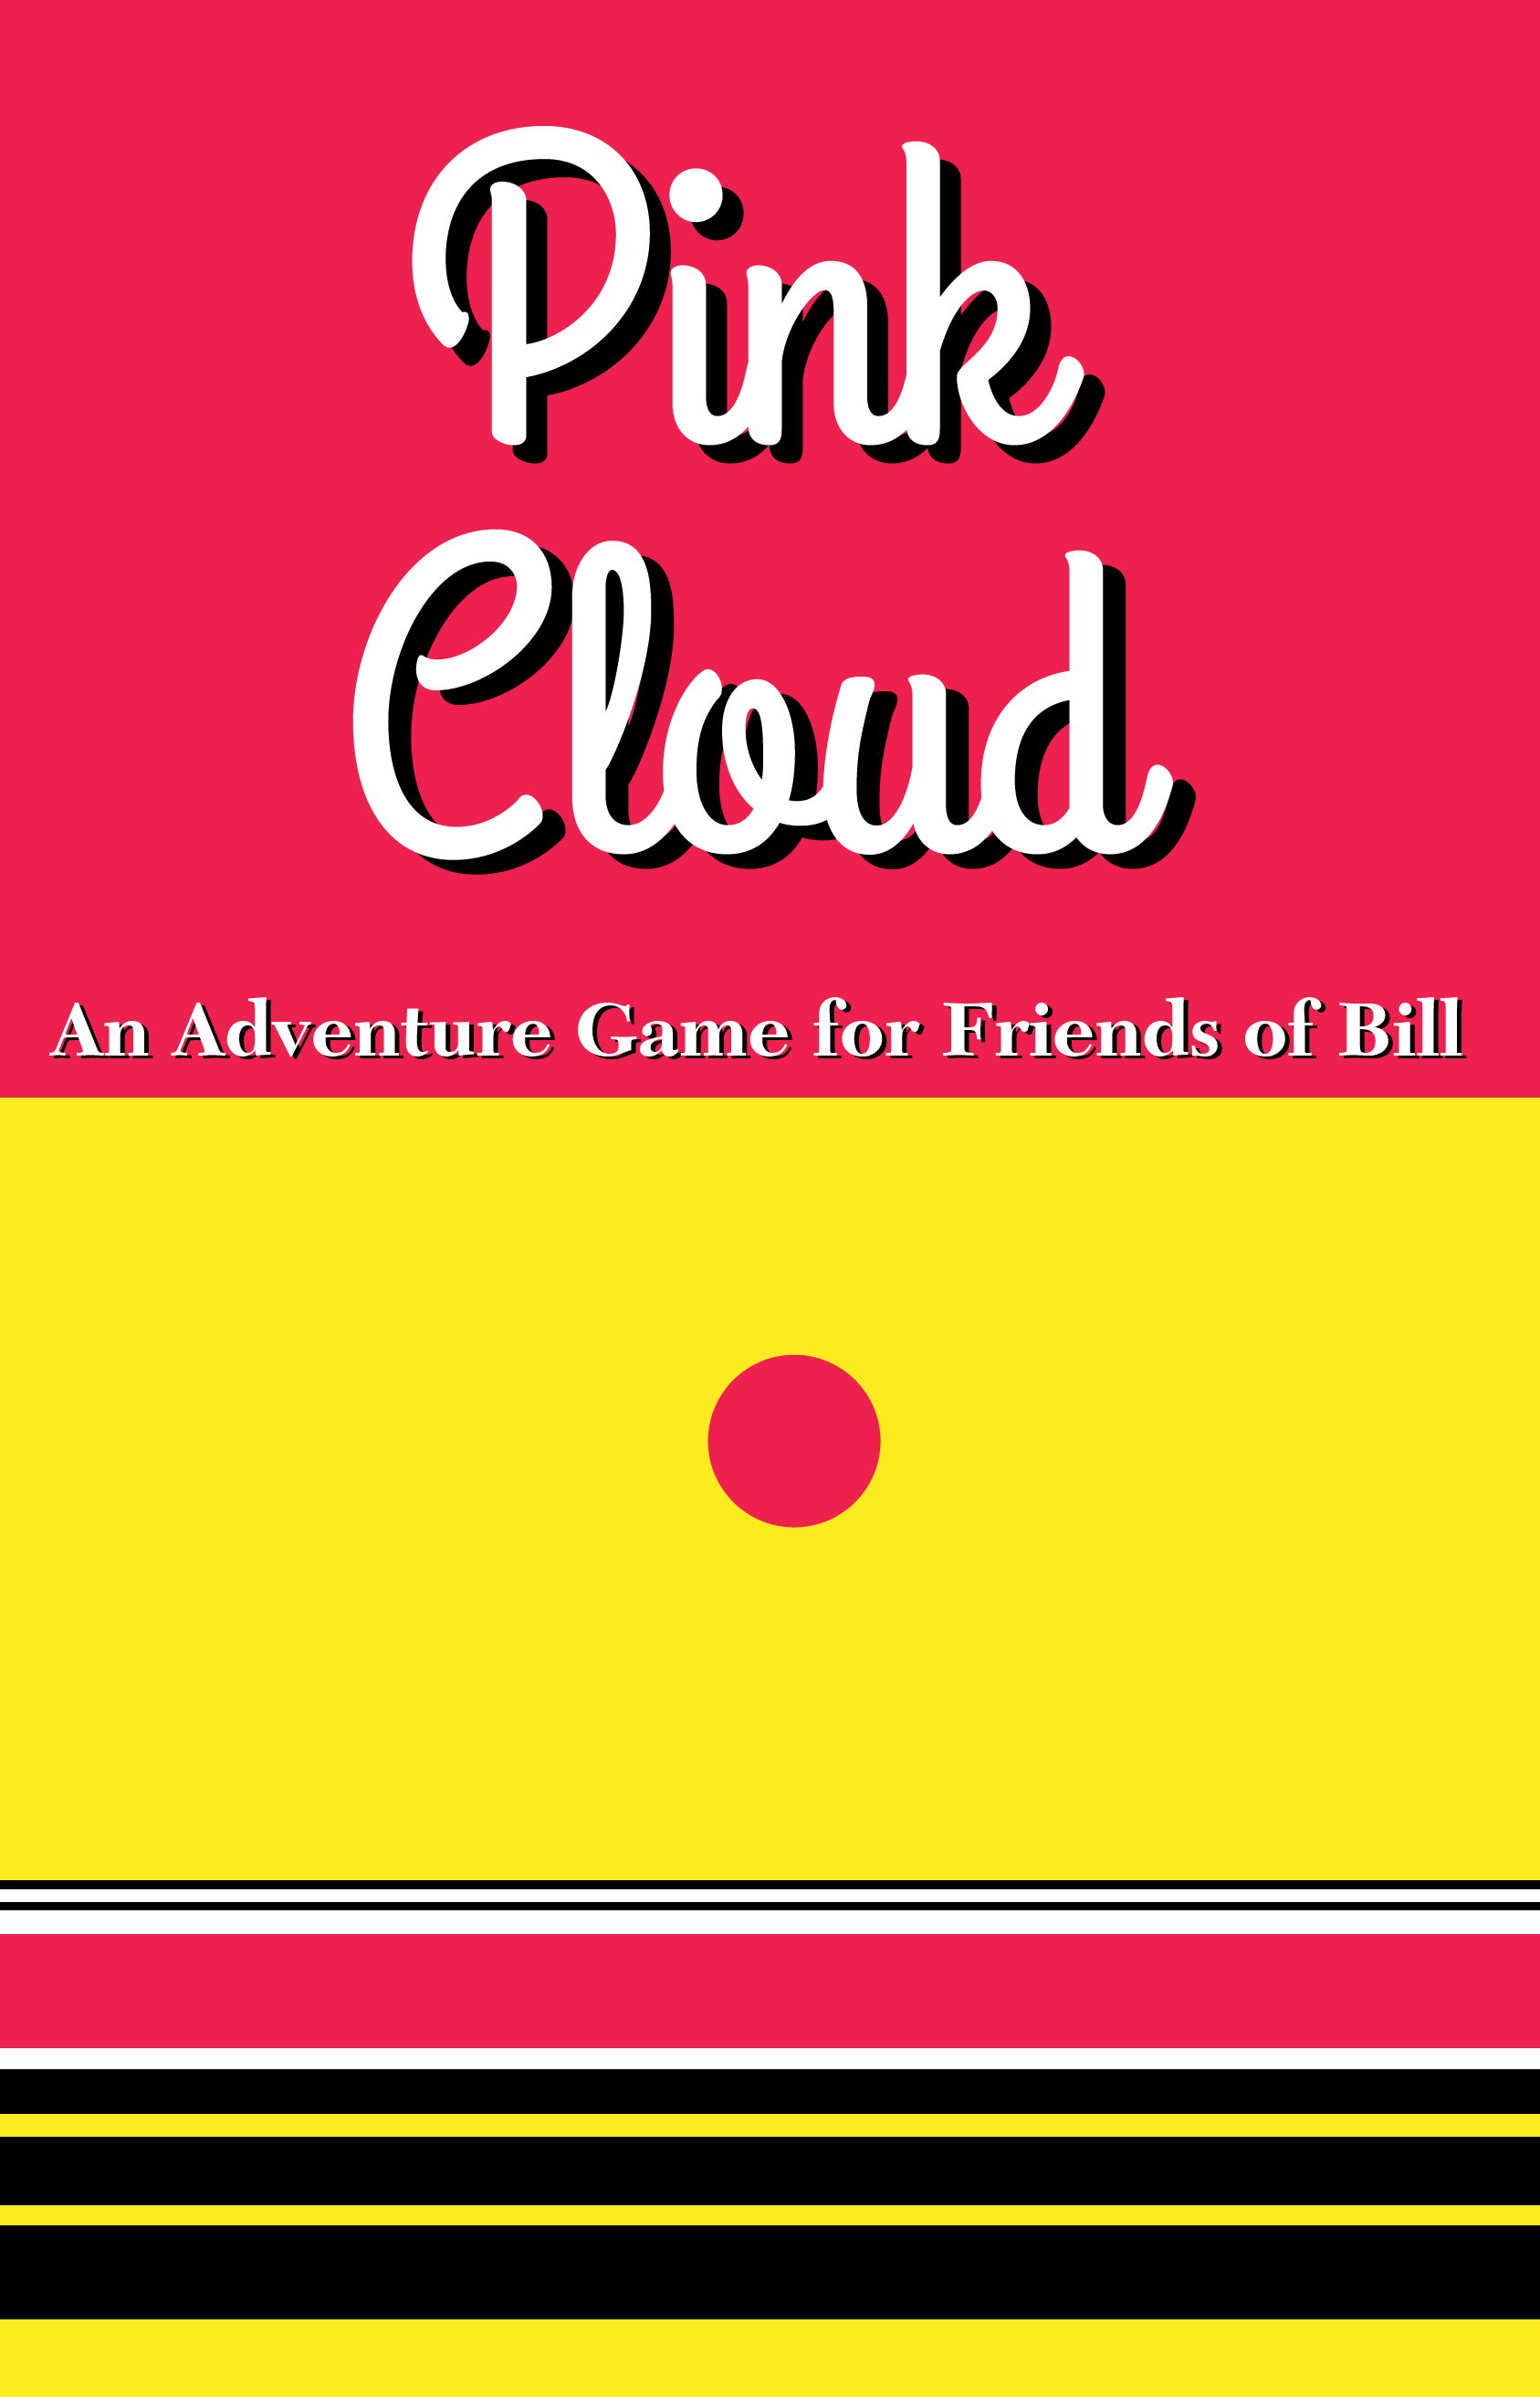 PINK CLOUD COVER front only - 5.5 x 8.5 - 550pp.png